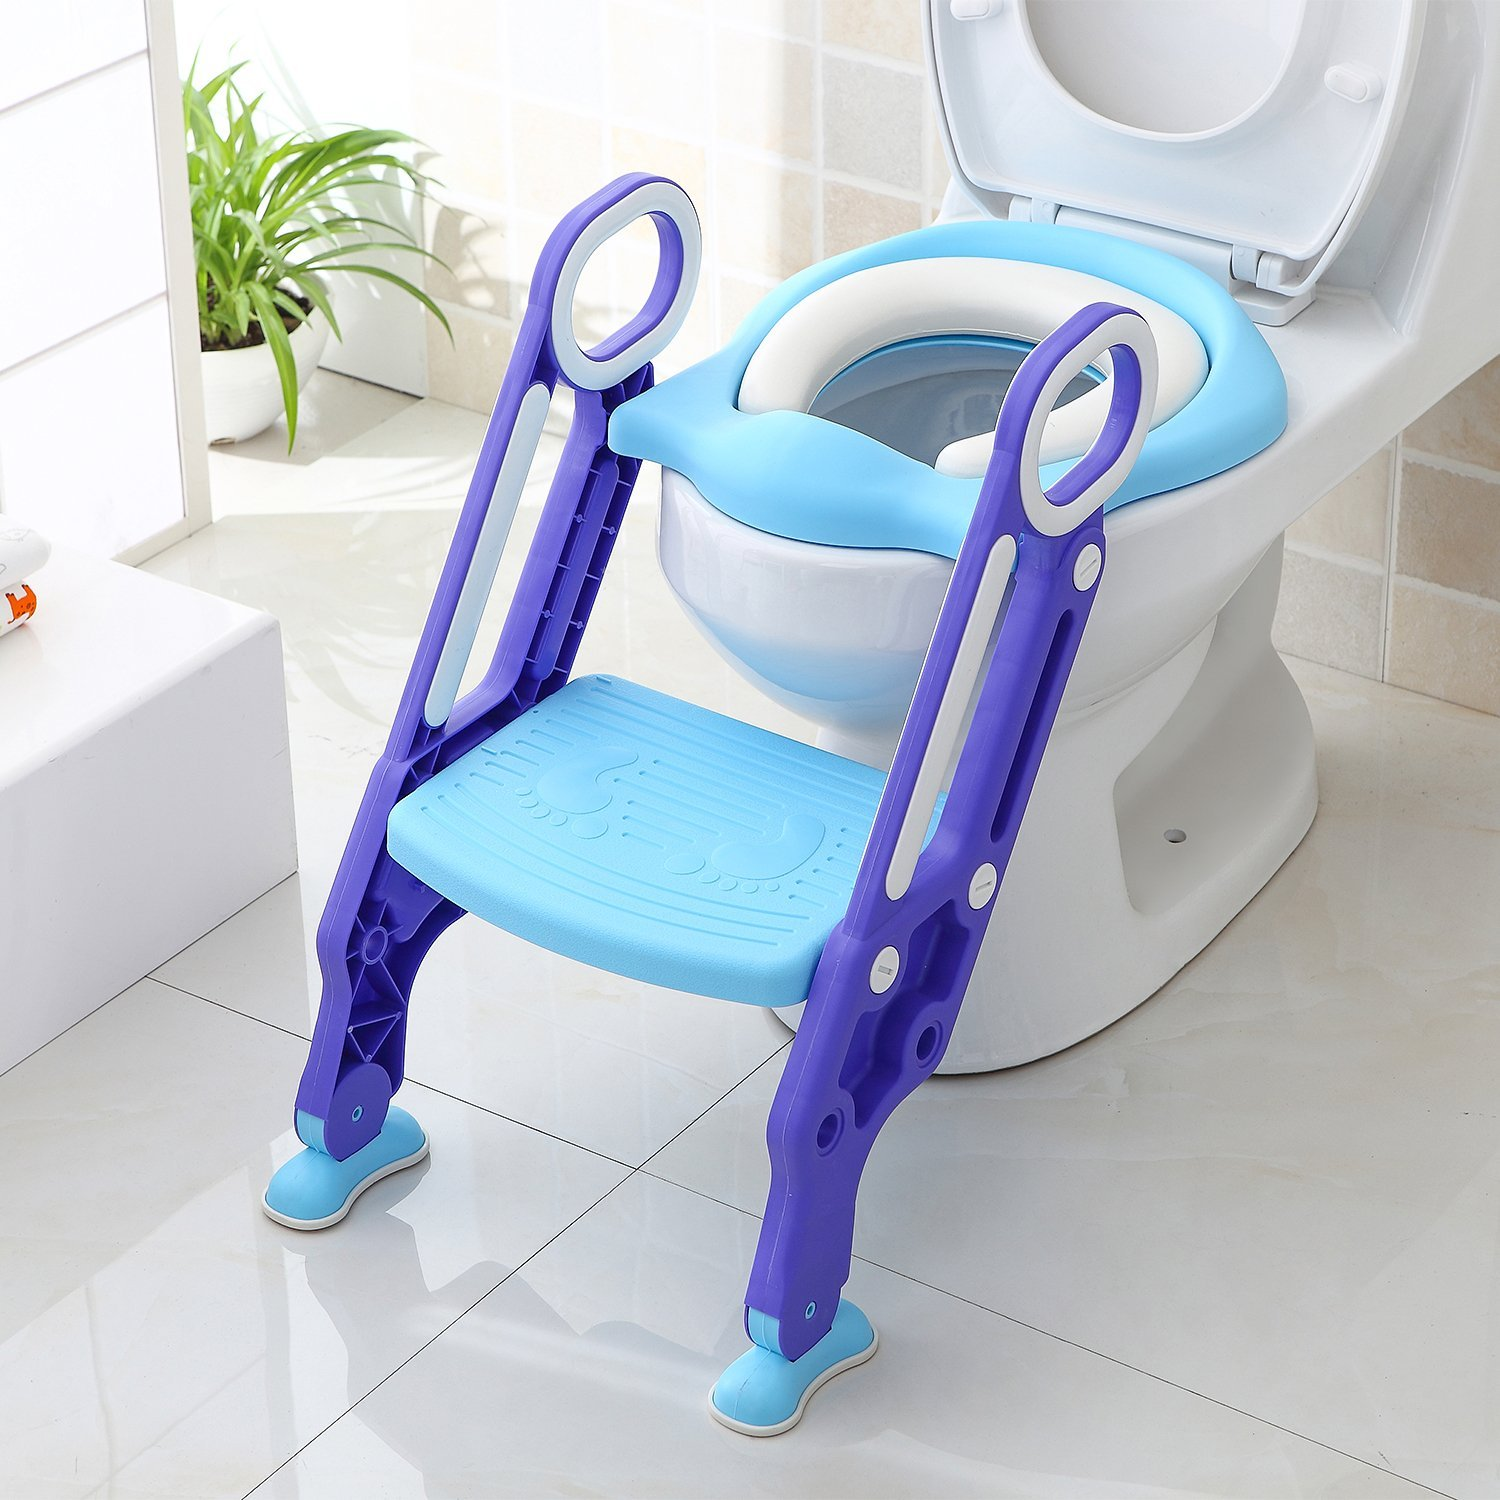 BAMNY Potty Toilet Seat Adjustable Baby Toddler Kid Toilet Trainer with Step Stool Ladder for Boy and Girl,by Bamny BMY